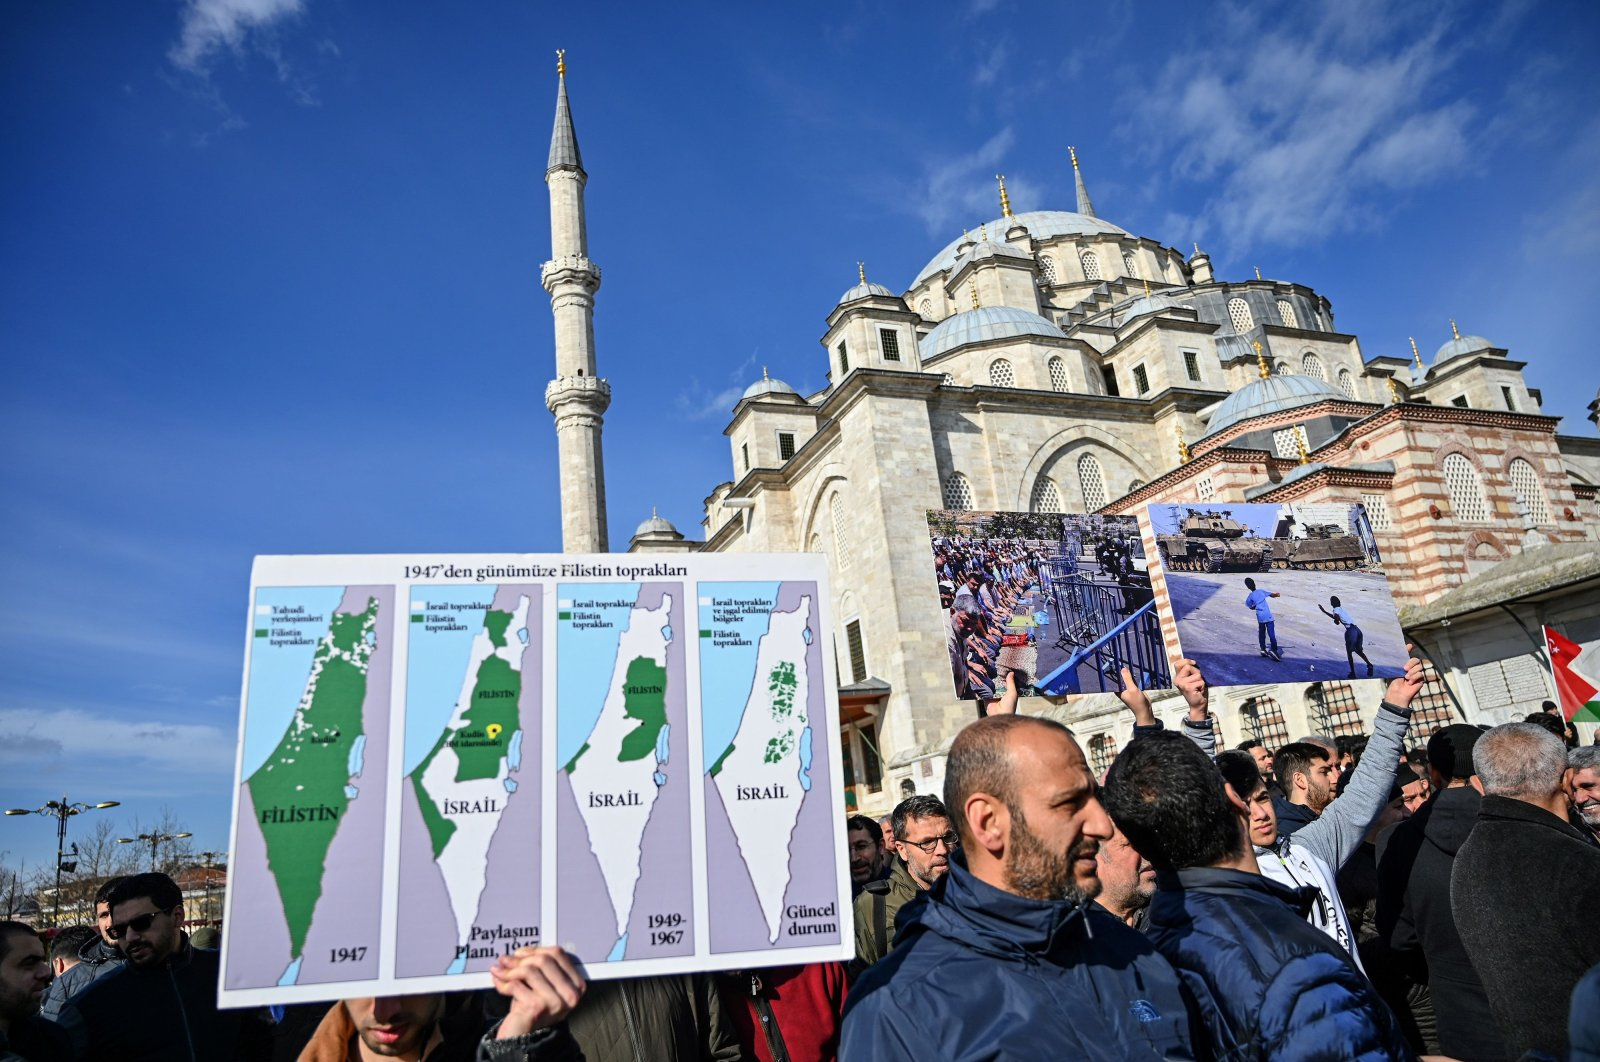 A protester holds up a chronological map of Palestine during a demonstration at Fatih Mosque to protest the so-called U.S. peace plan, in Istanbul, Turkey, Jan. 31, 2020. (AFP)